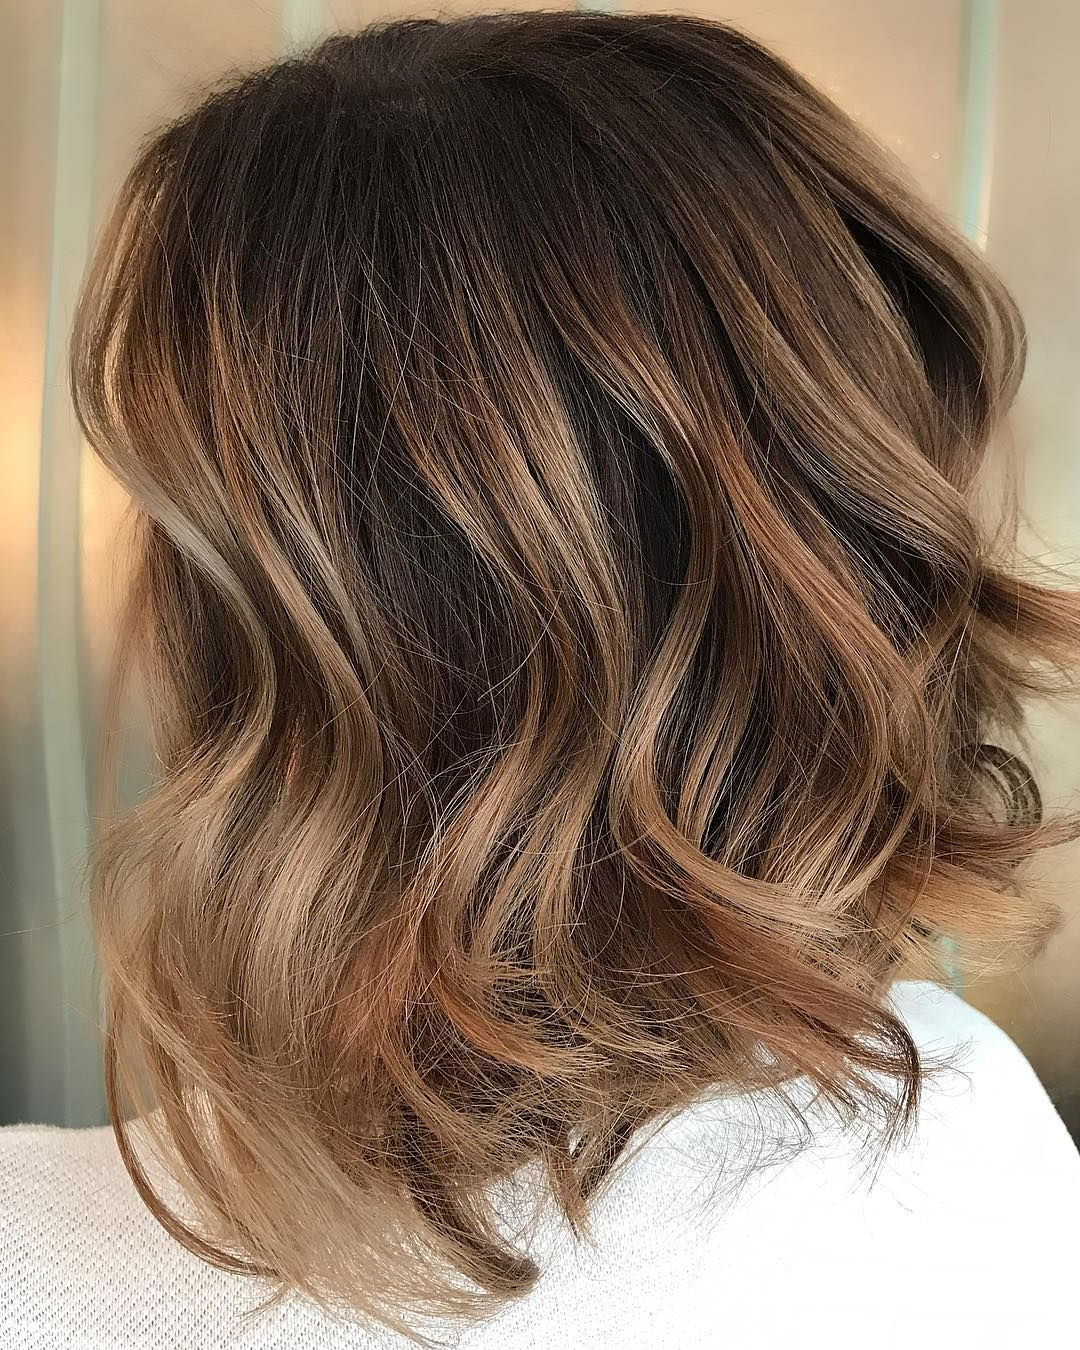 Most Recently Released Medium Hairstyles And Colors Intended For 10 Trendy Brown Balayage Hairstyles For Medium Length Hair (View 8 of 20)